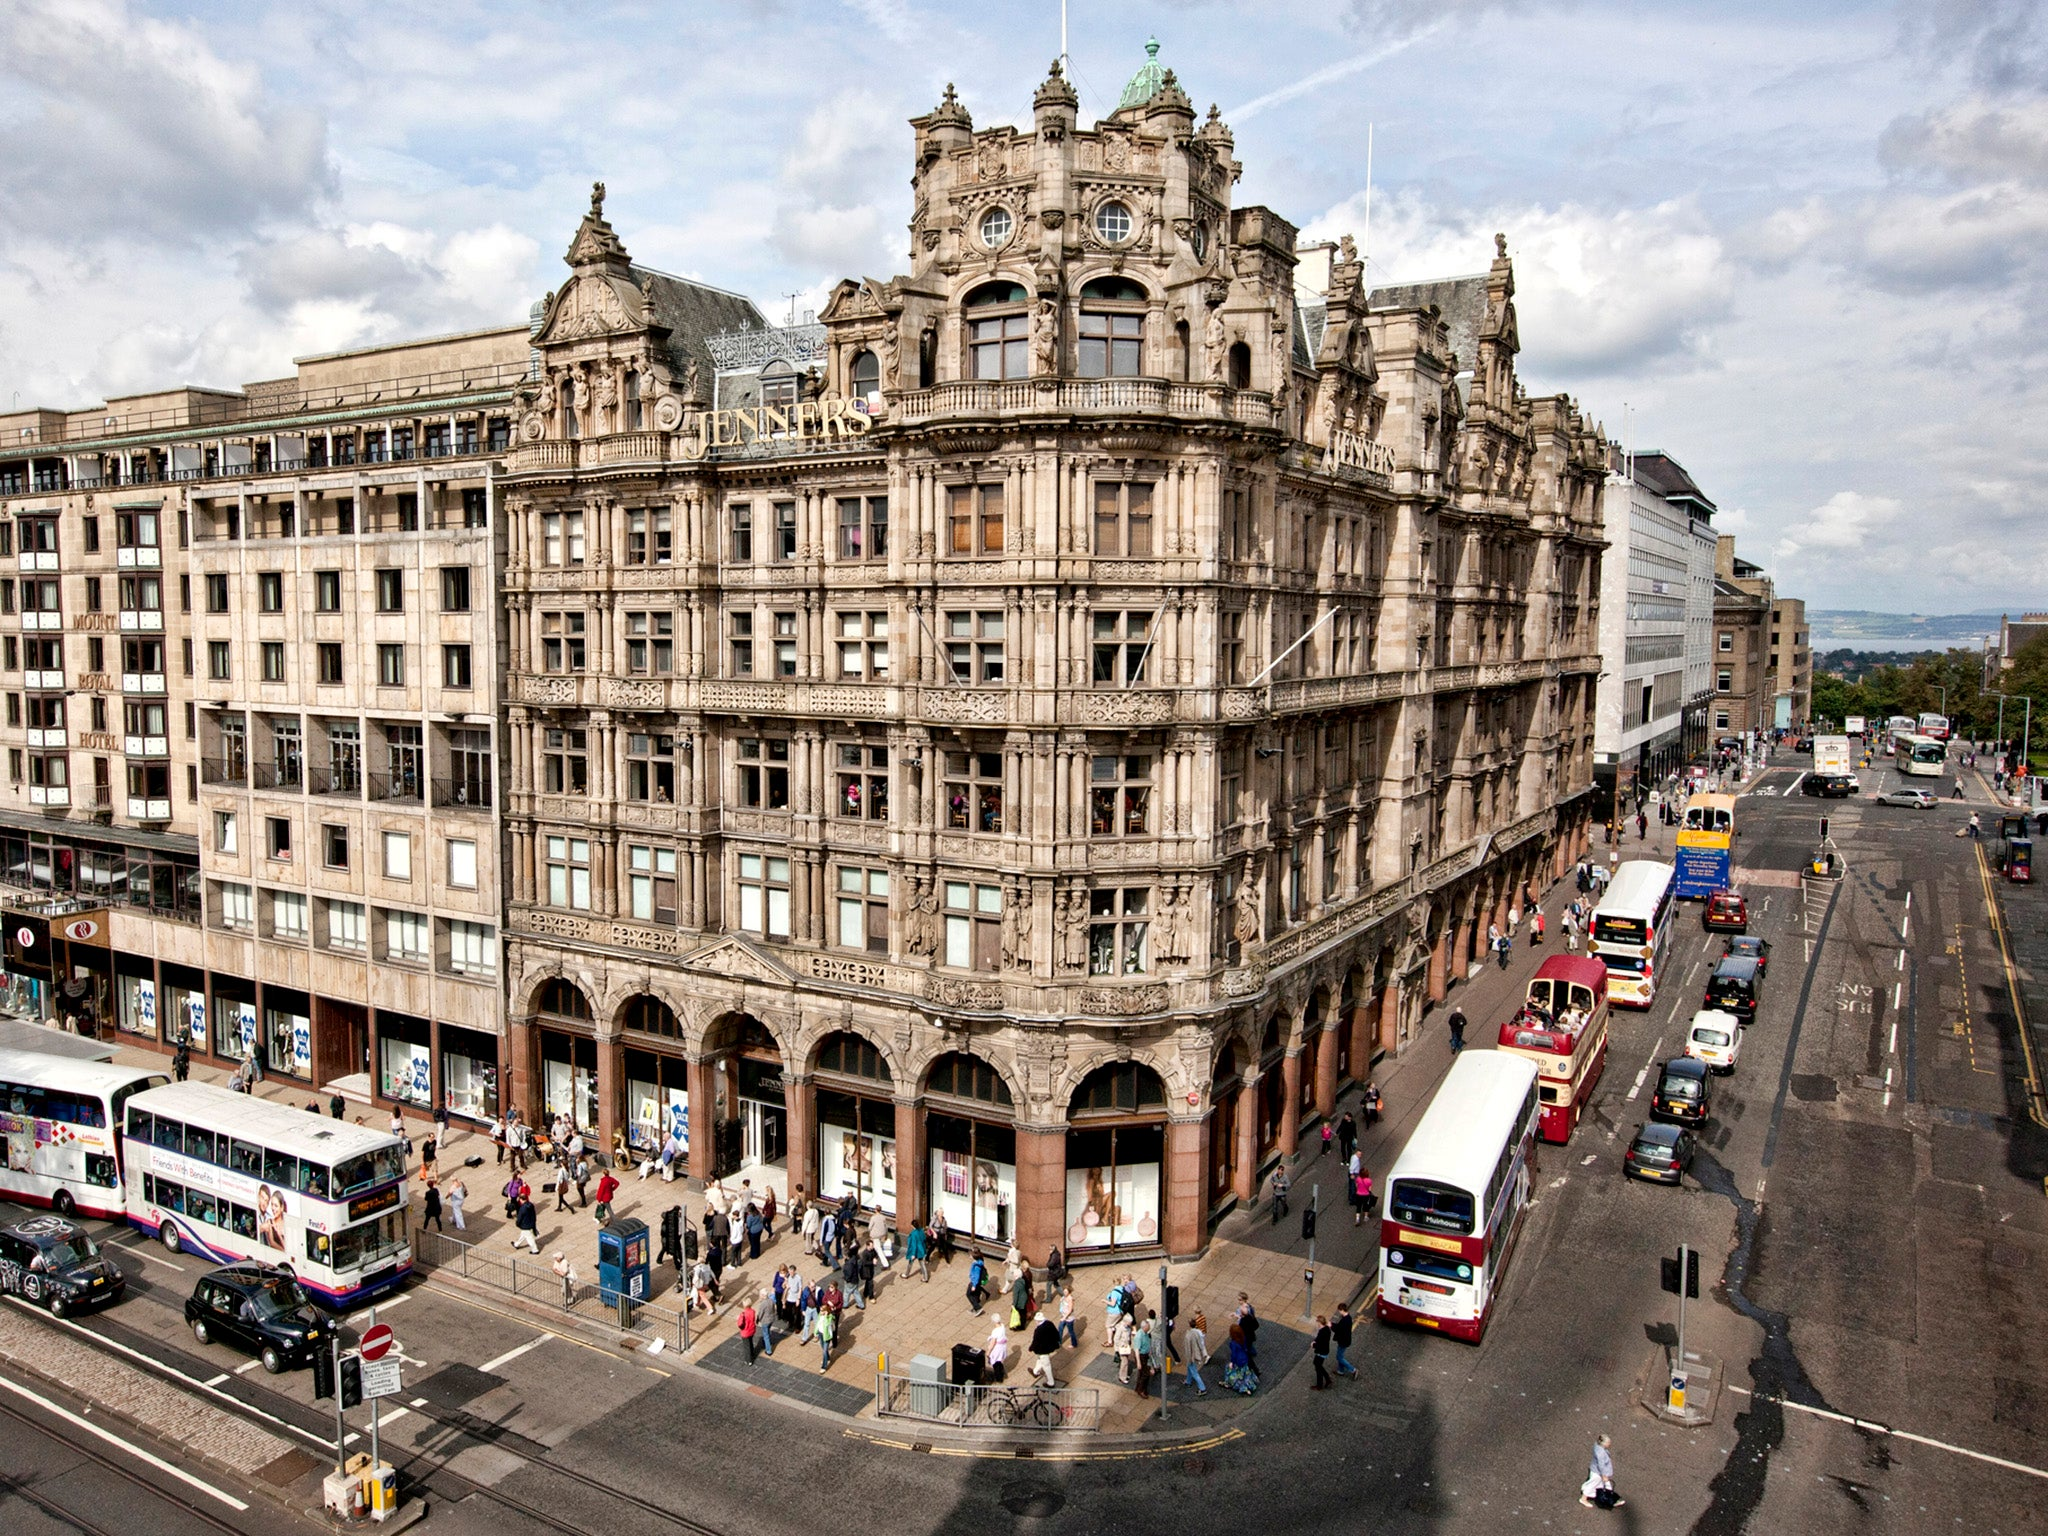 Edinburgh S Iconic Jenners Department Store To Close After More Than 180 Years The Independent